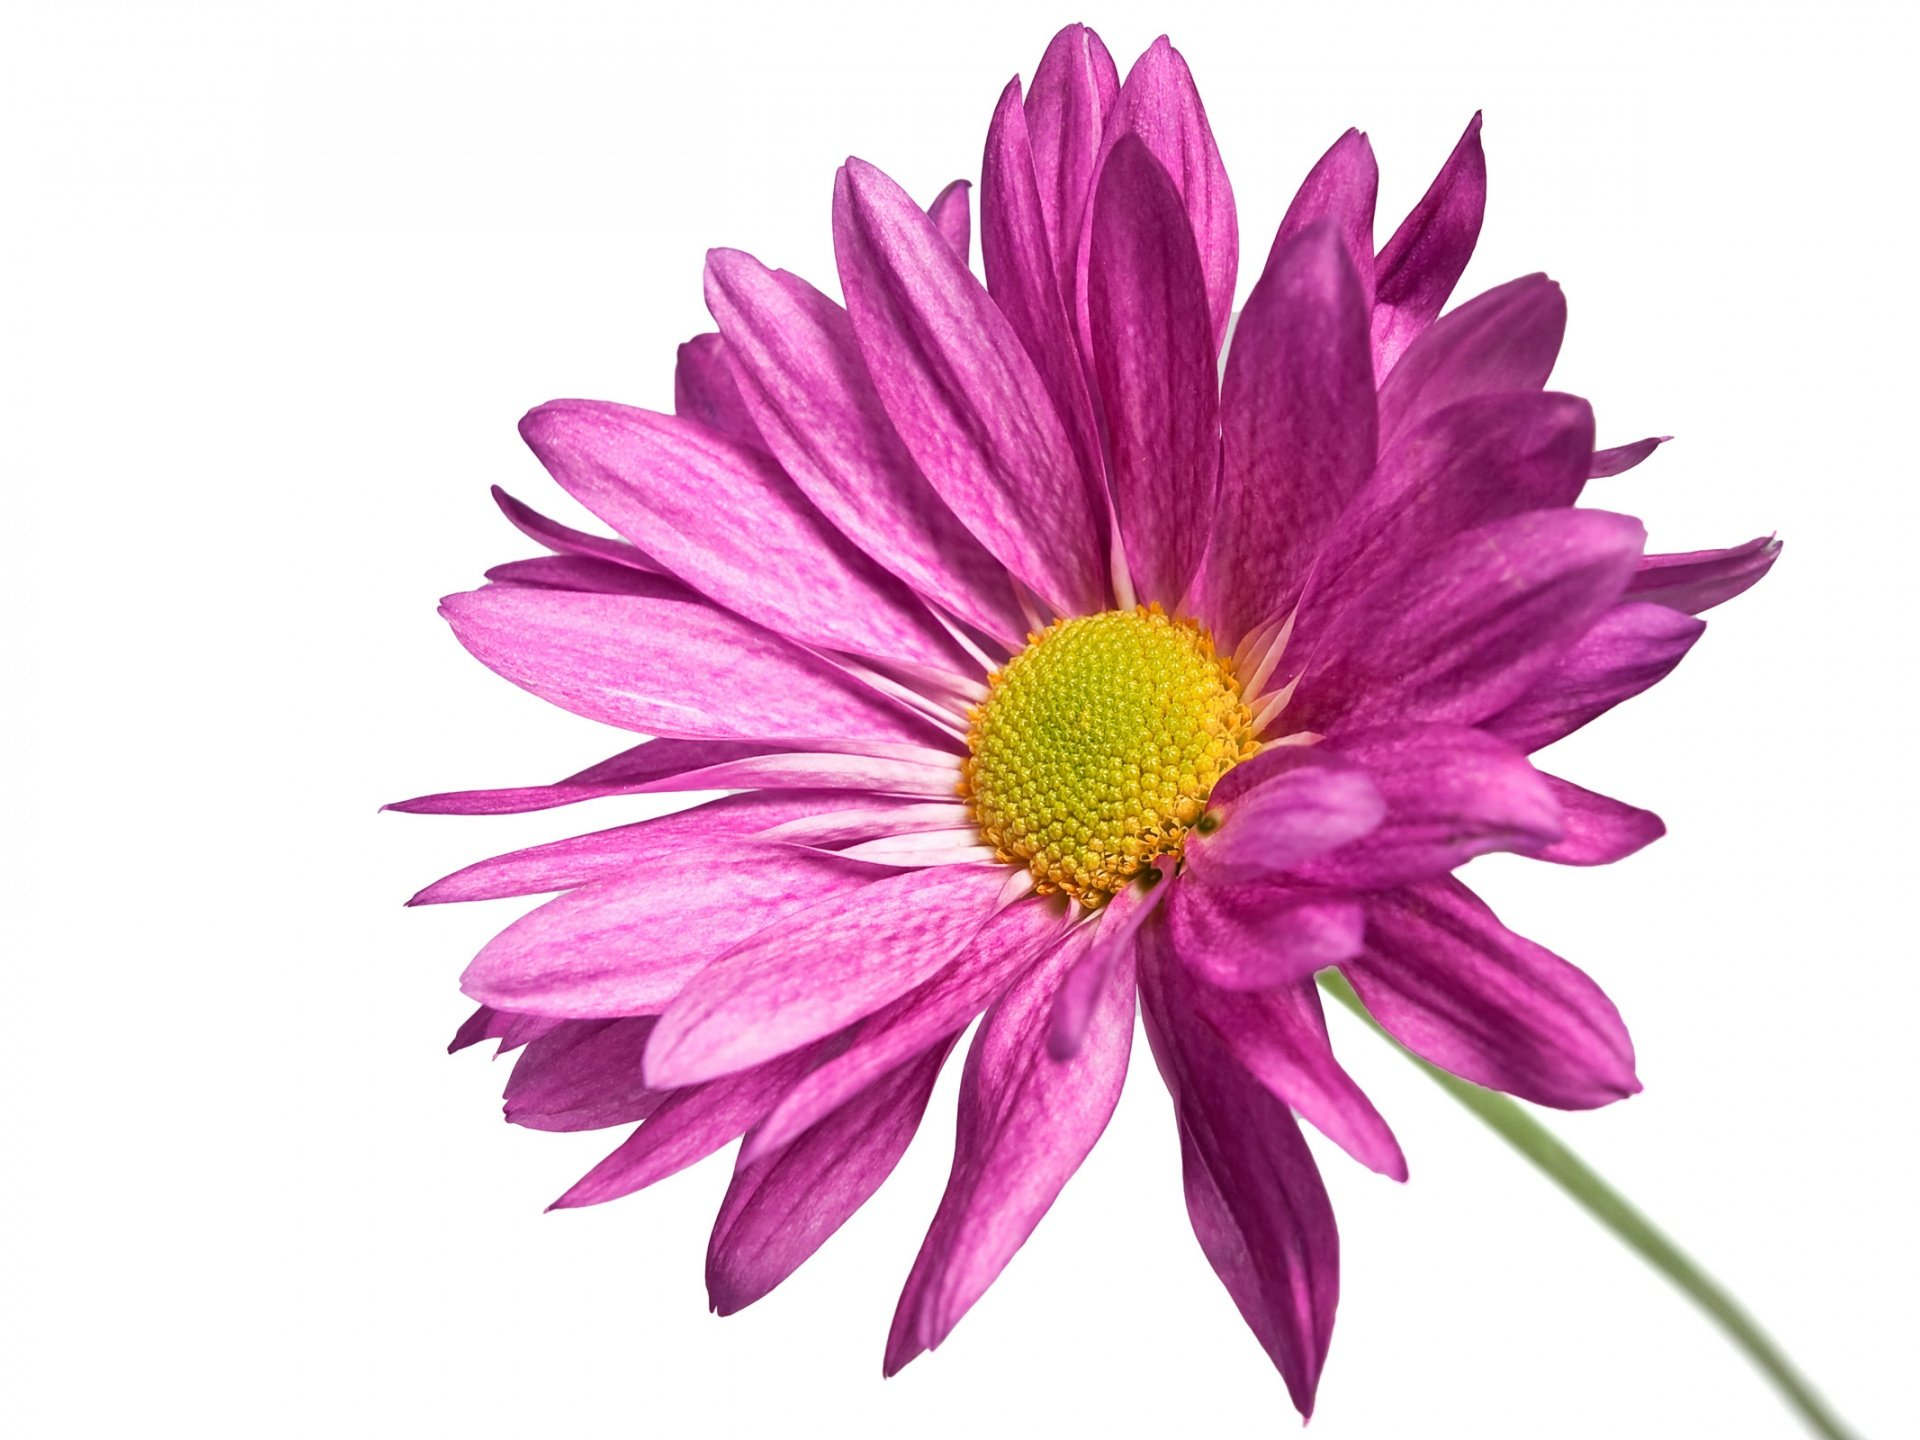 Pink flower white background wallpapersafari flower white background simple white background dhlflorist Image collections